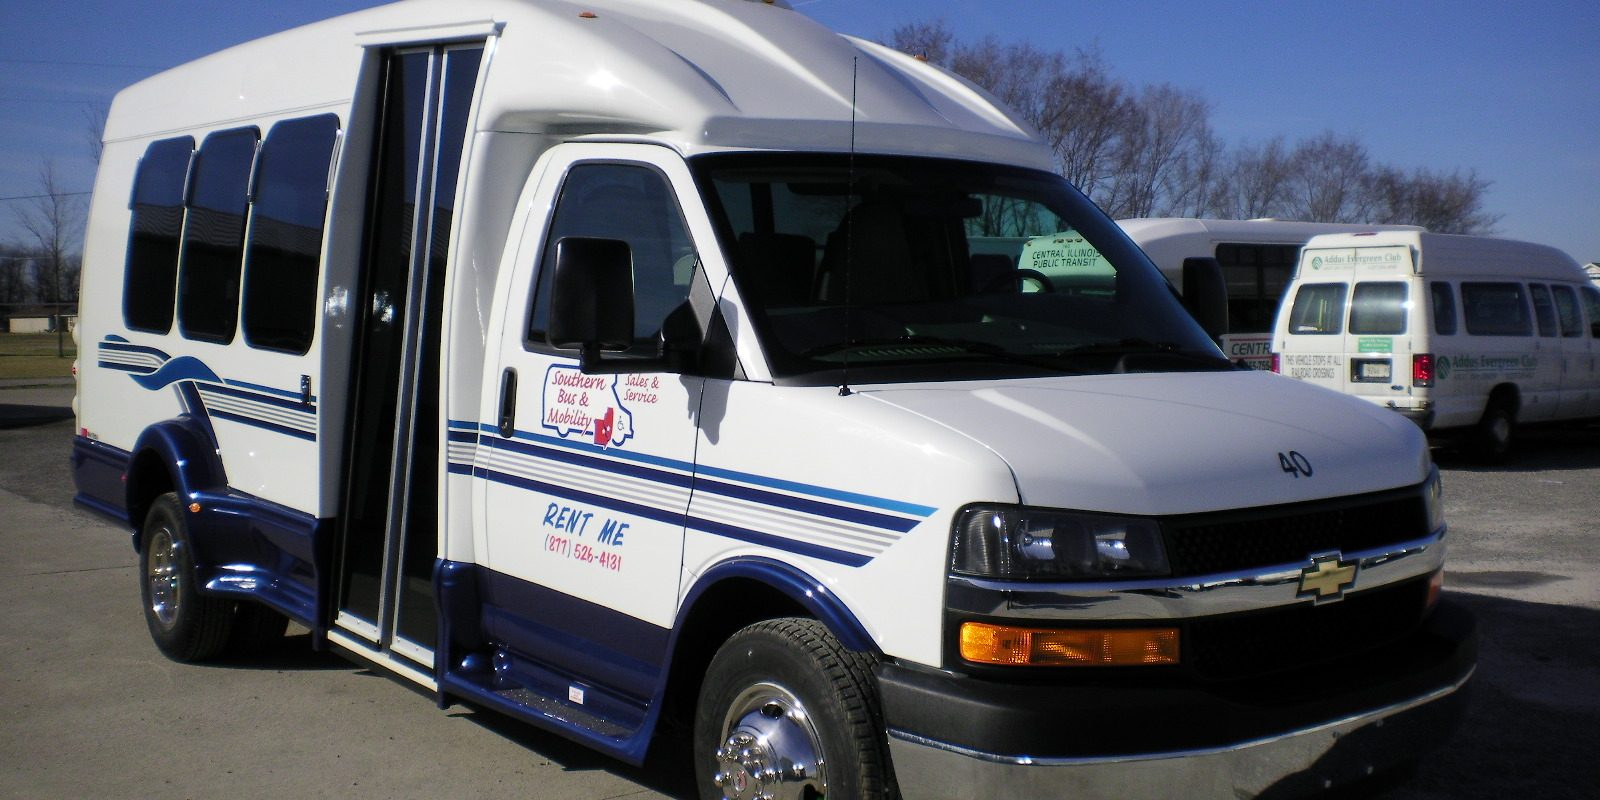 southern bus rentals